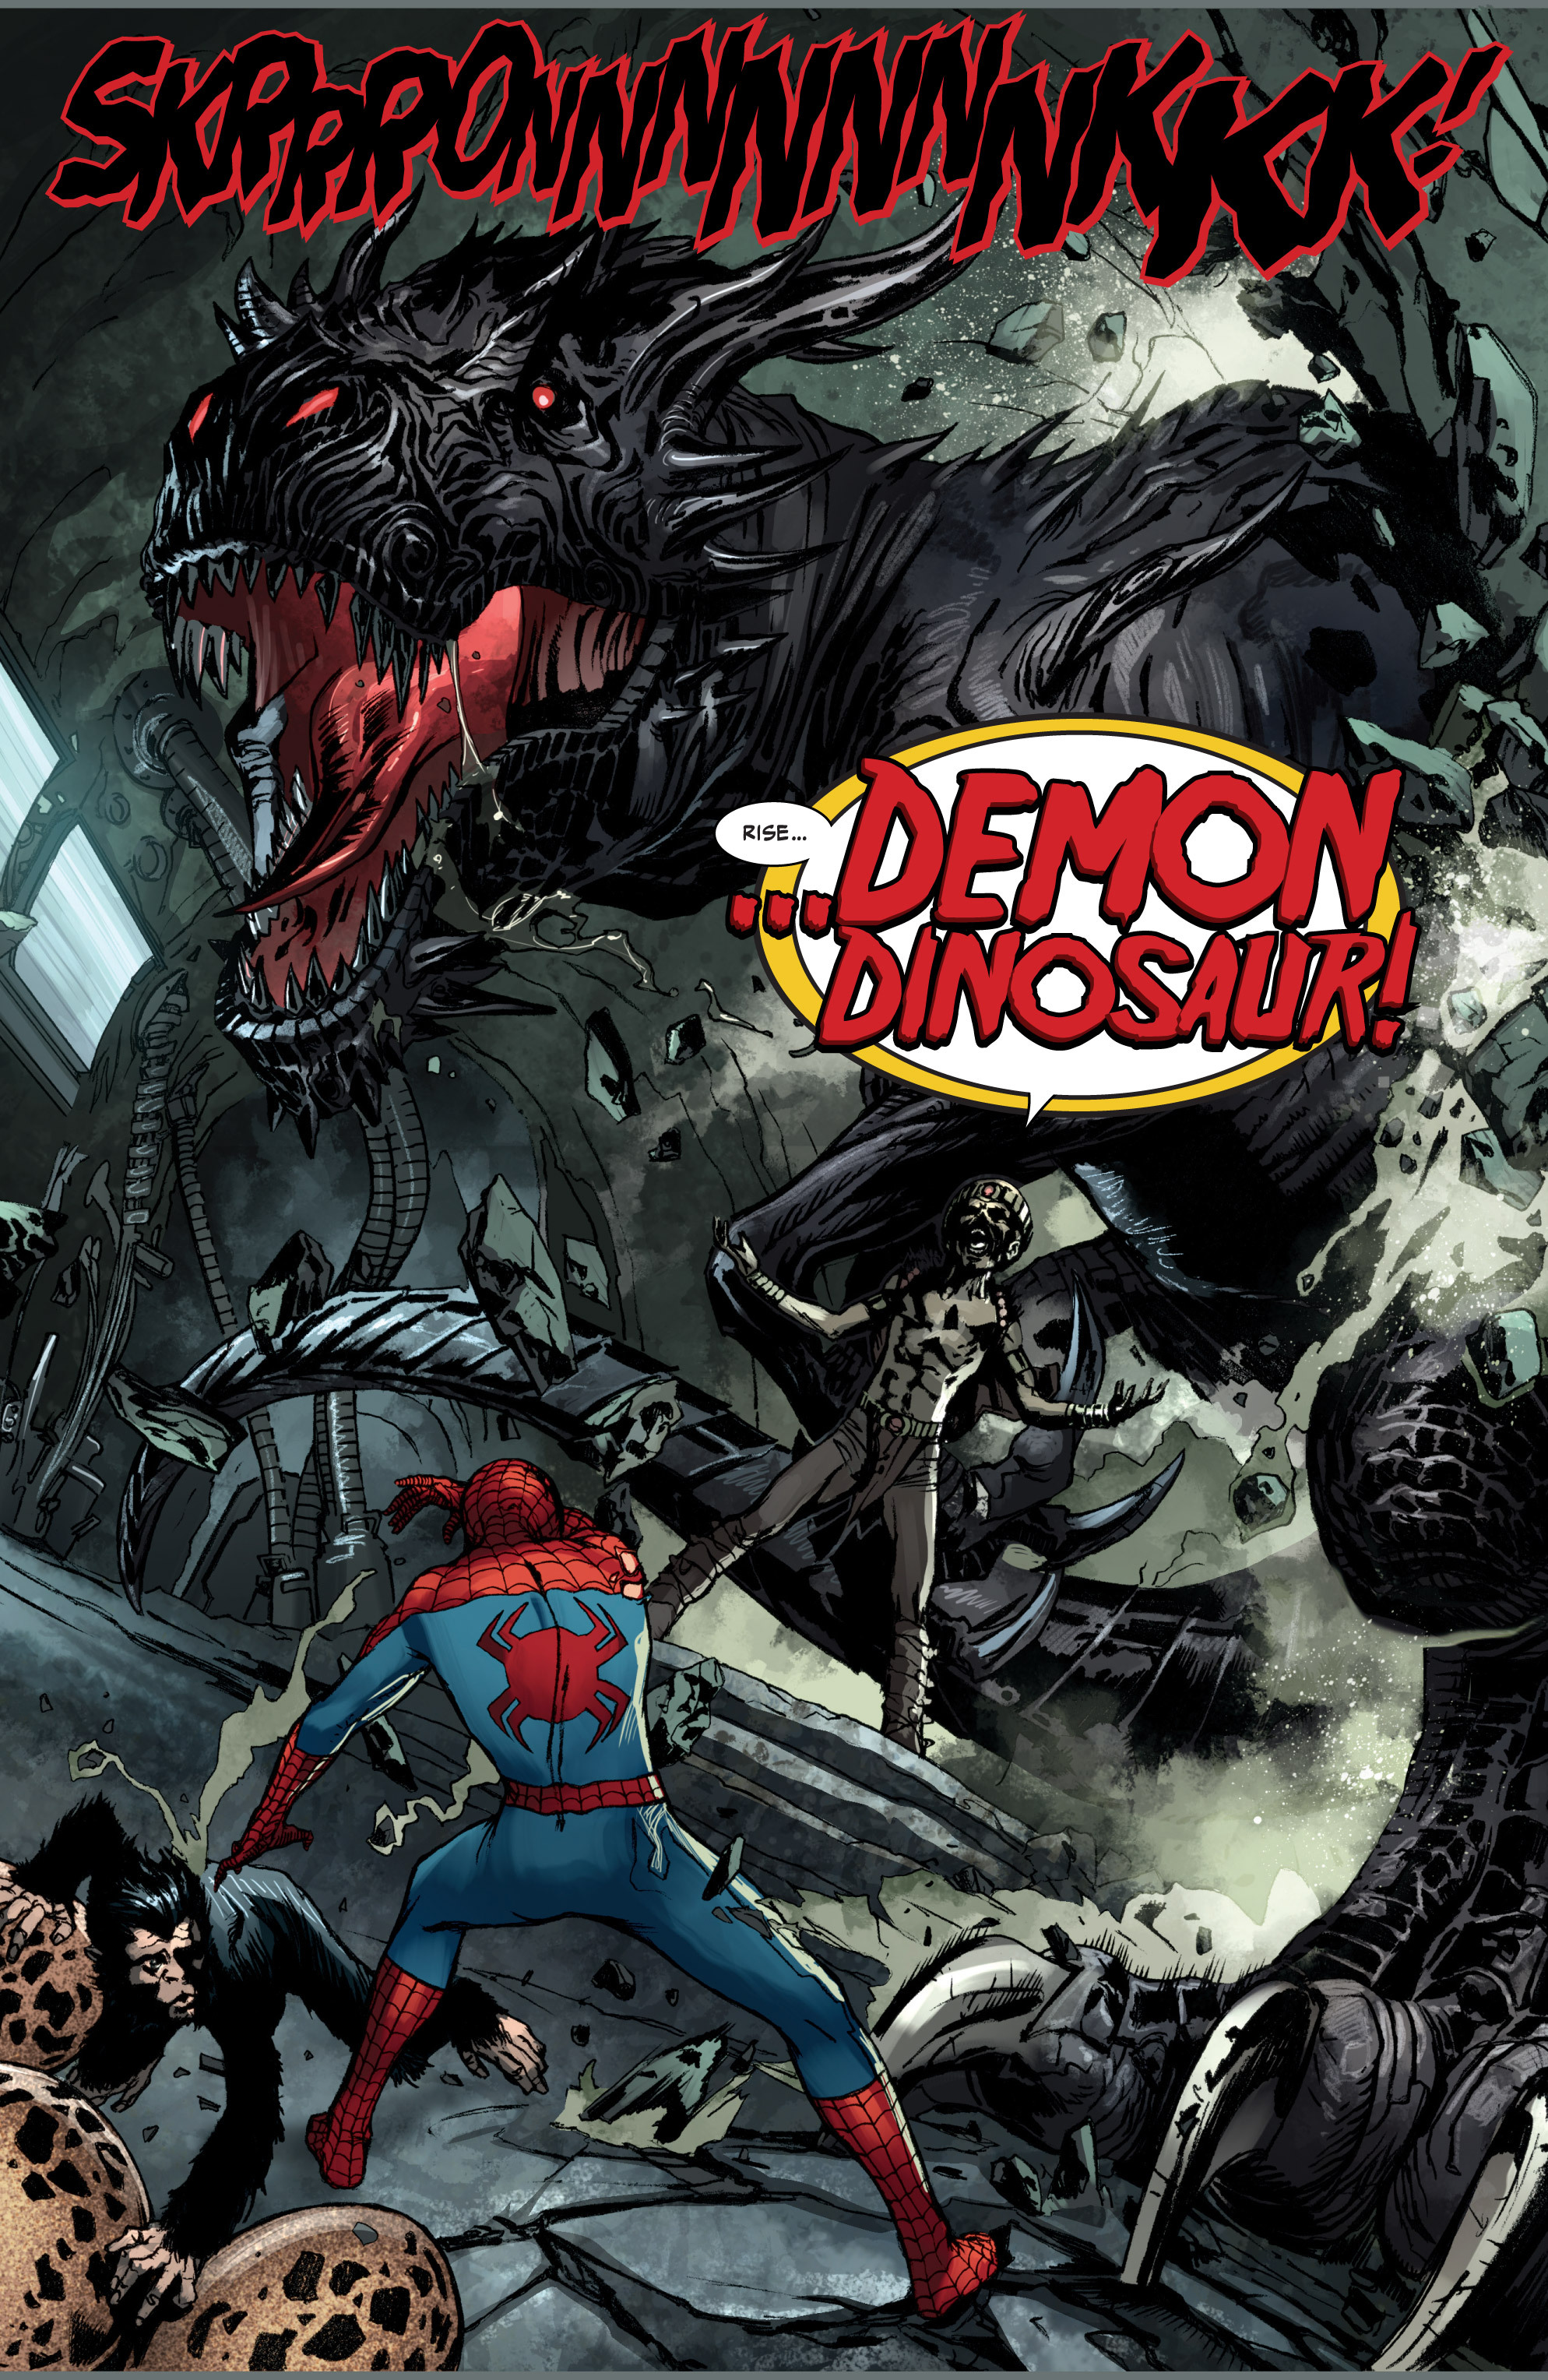 Devil Dinosaur VS Demon Dinosaur | Comicnewbies